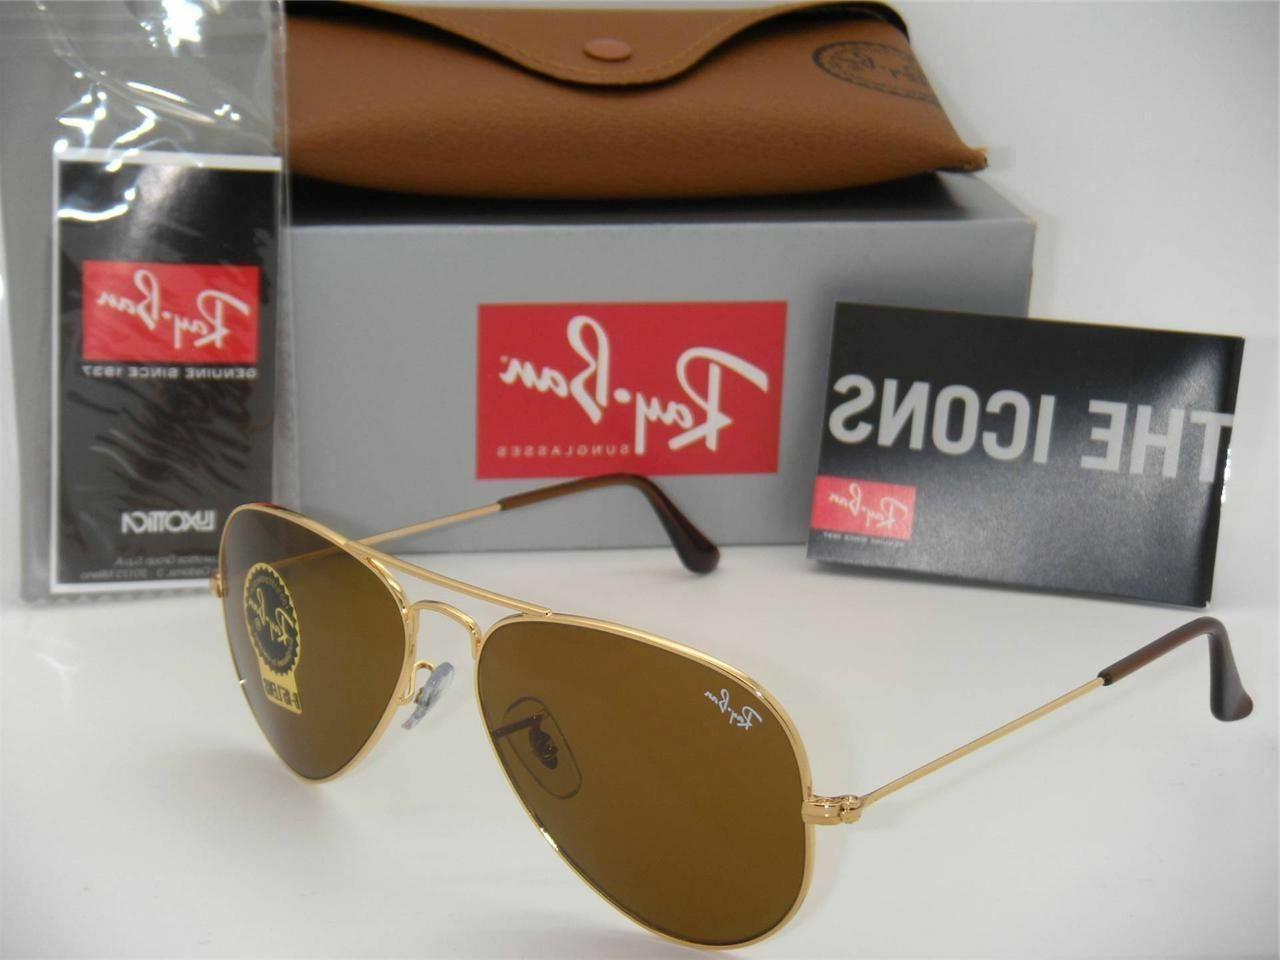 100% Guaranteed Ban 33 Sunglasses Brown 58mm